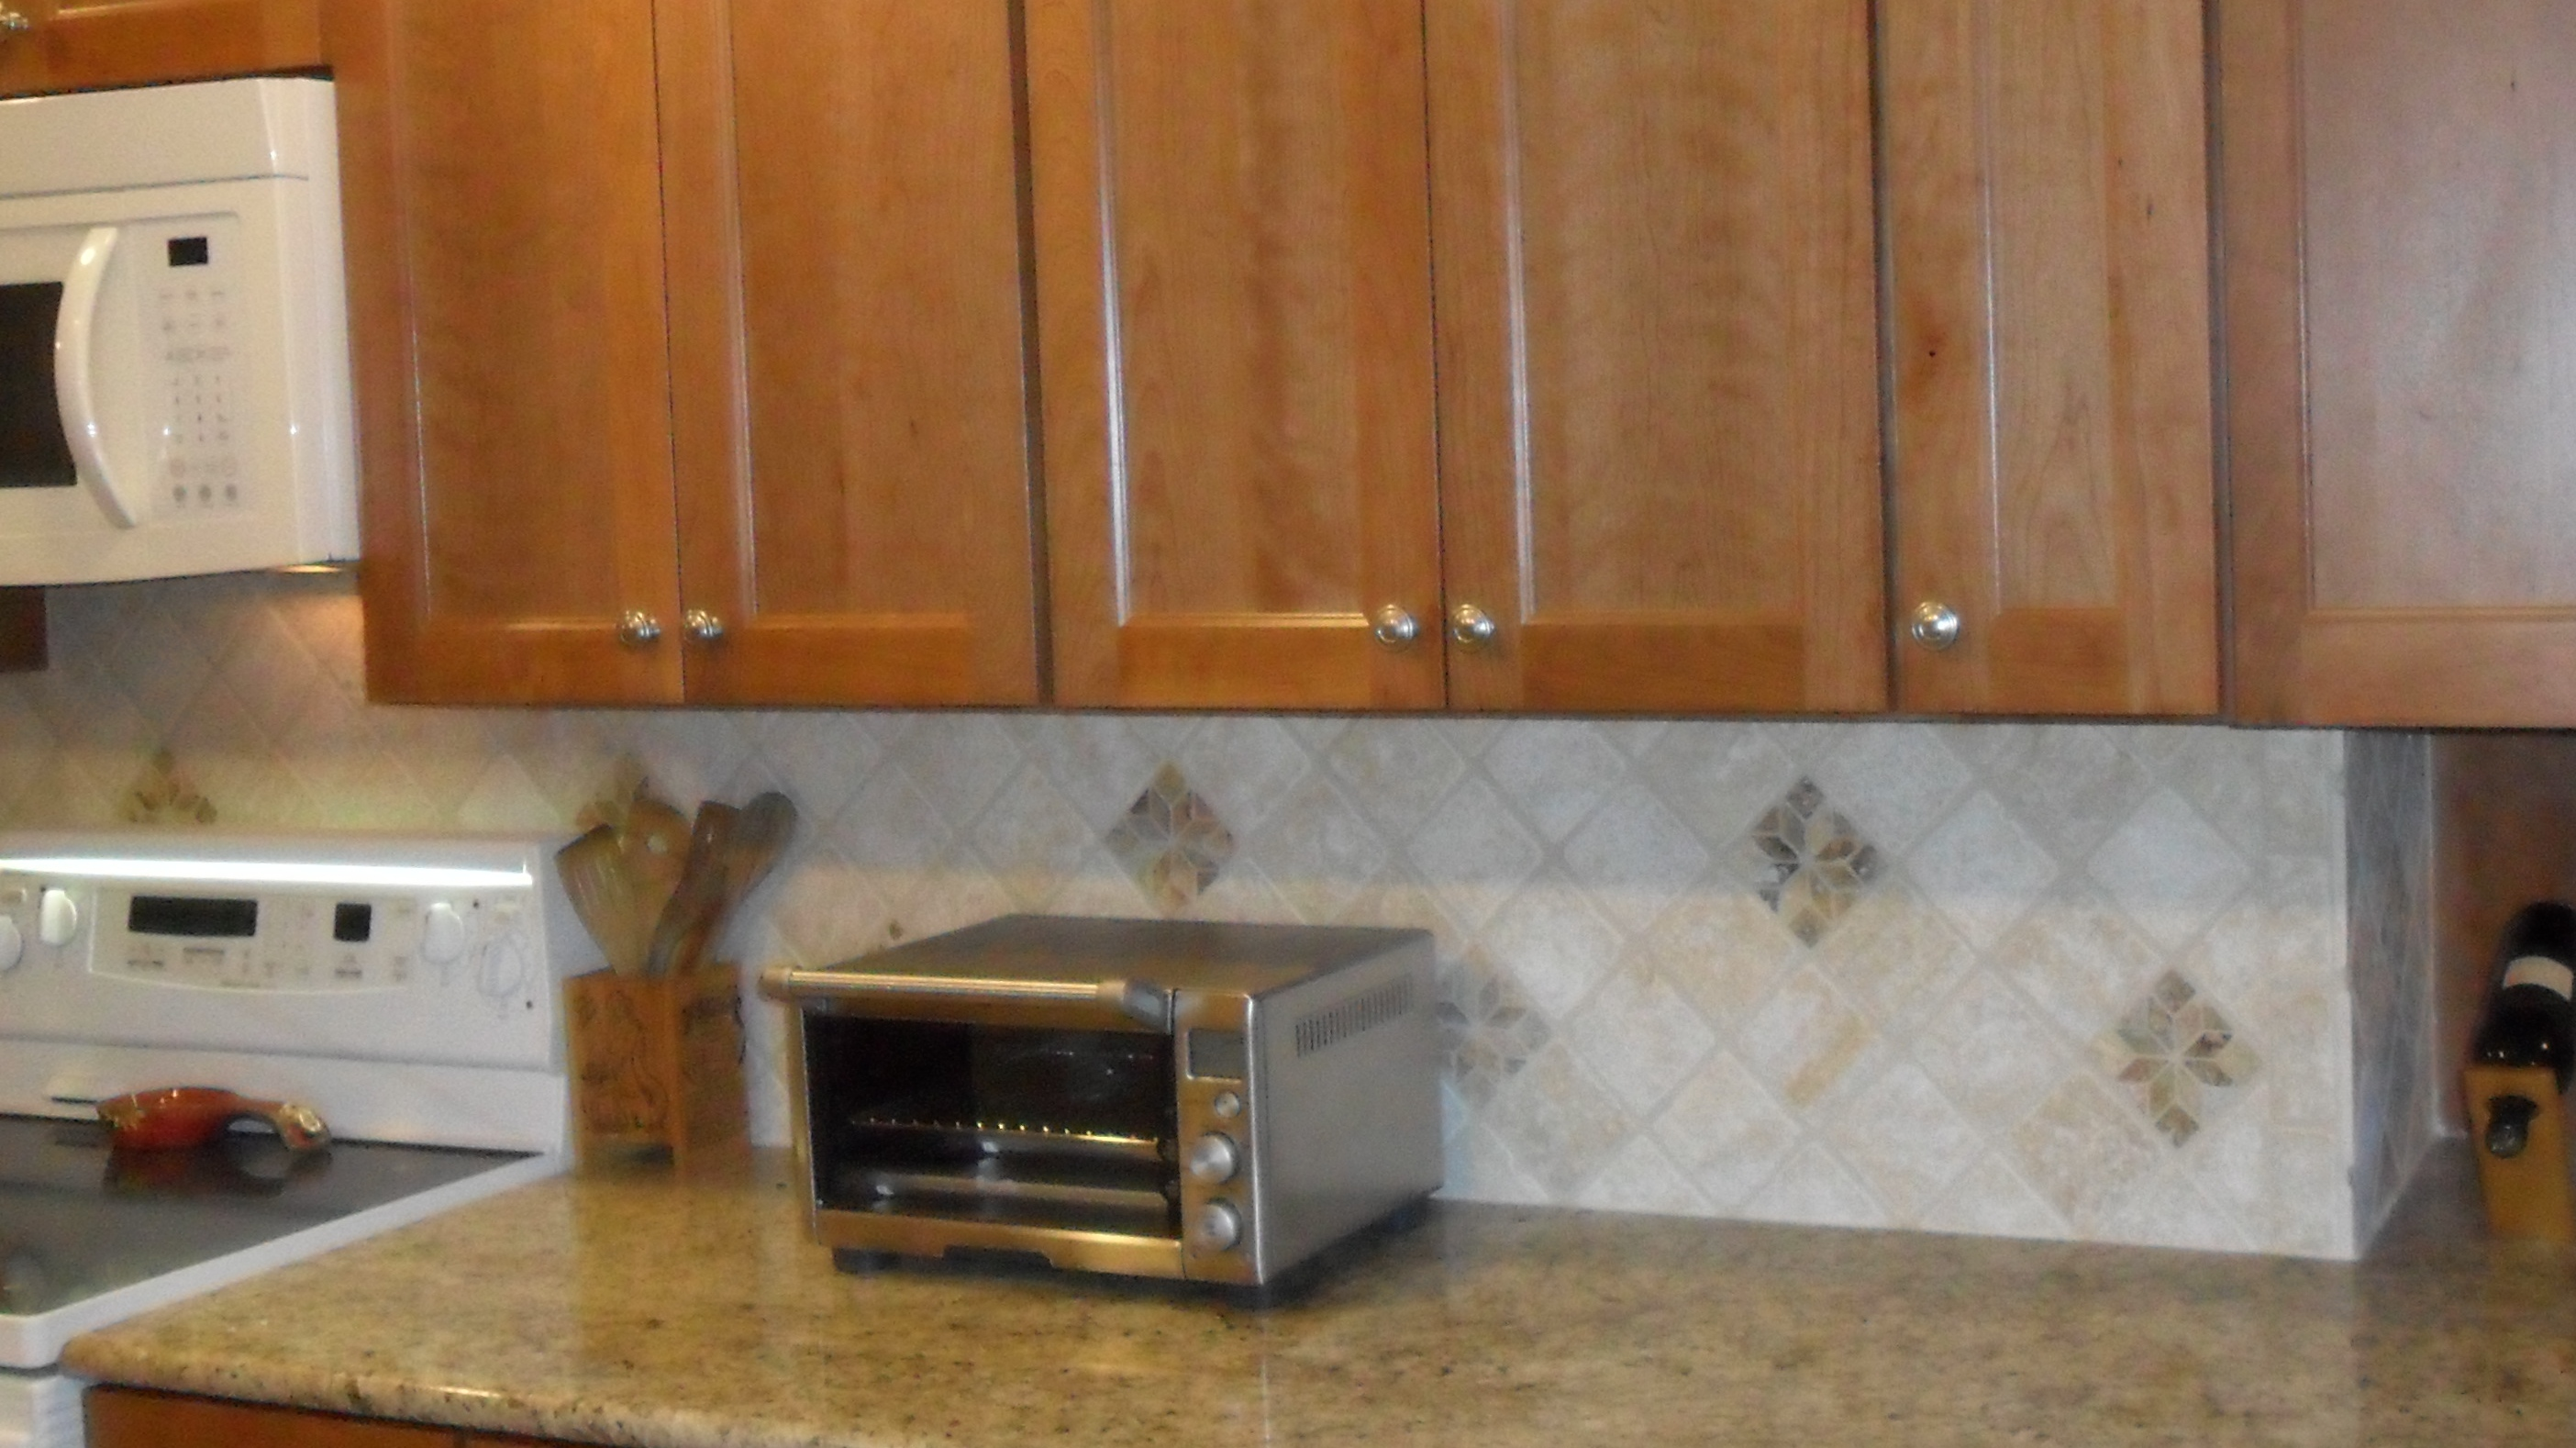 Traditional Backsplash Ideas For Kitchen Counter Cabinet Match